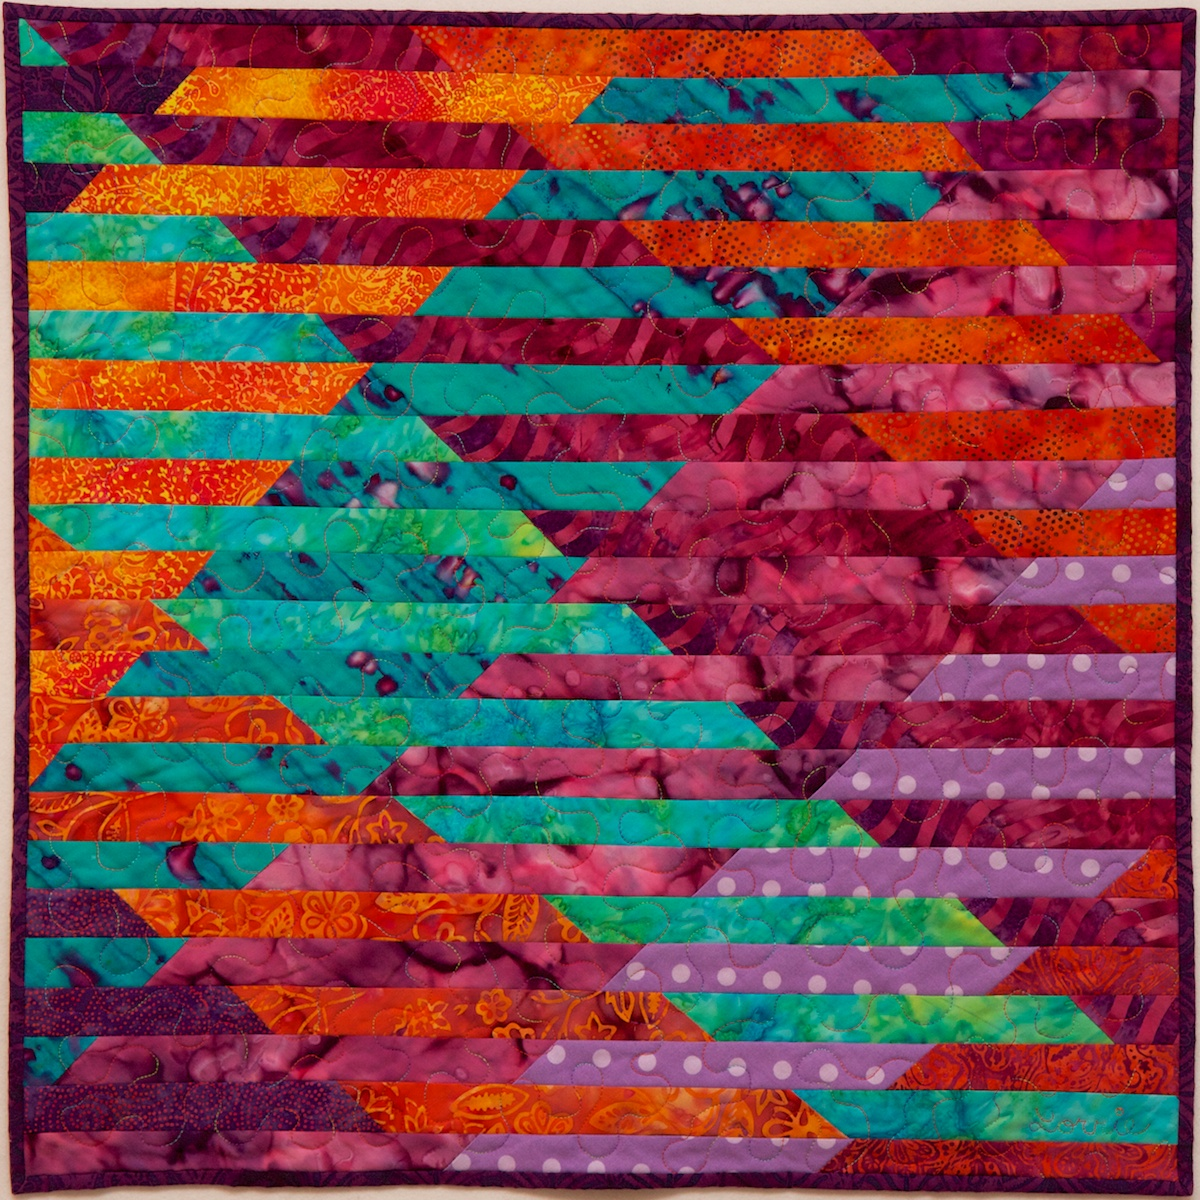 Quilting Designs For Water : Quilt lecture and Interleave workshop This Thing